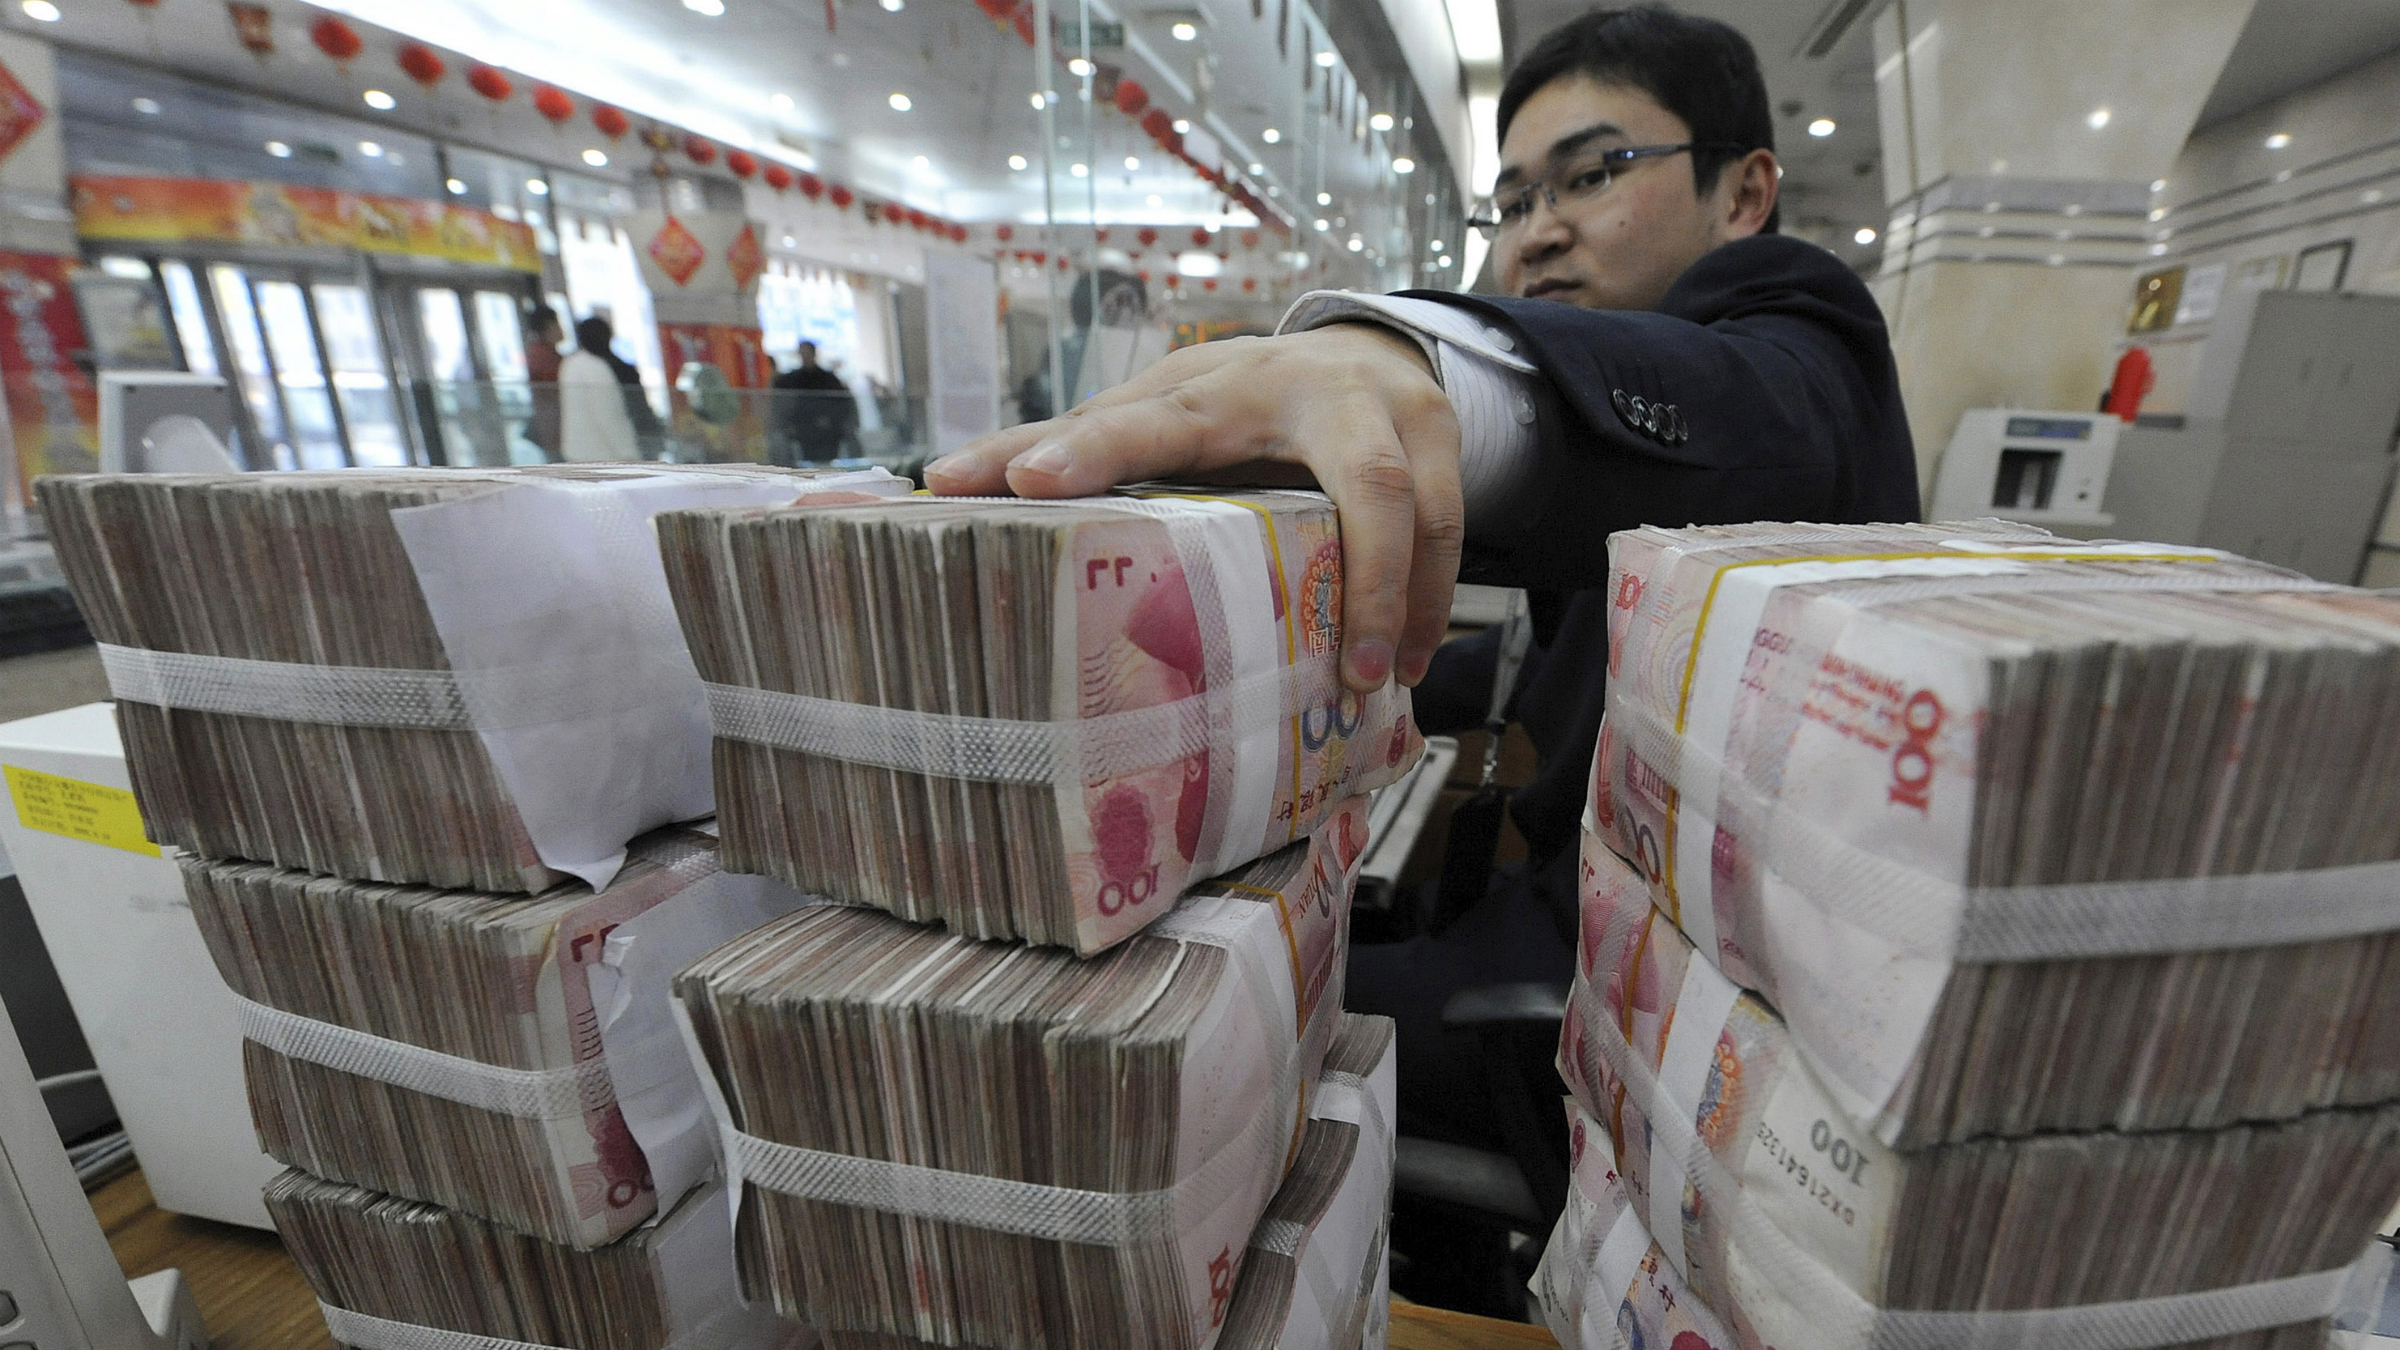 An employee counts Chinese yuan banknotes at a Bank of China branch in Hefei, Anhui province March 10, 2010. Chinese banks extended about 700 billion yuan ($102.5 billion) in new loans in February, half that of January, as the government clampdown on lending took hold, state media said on Wednesday. REUTERS/Stringer